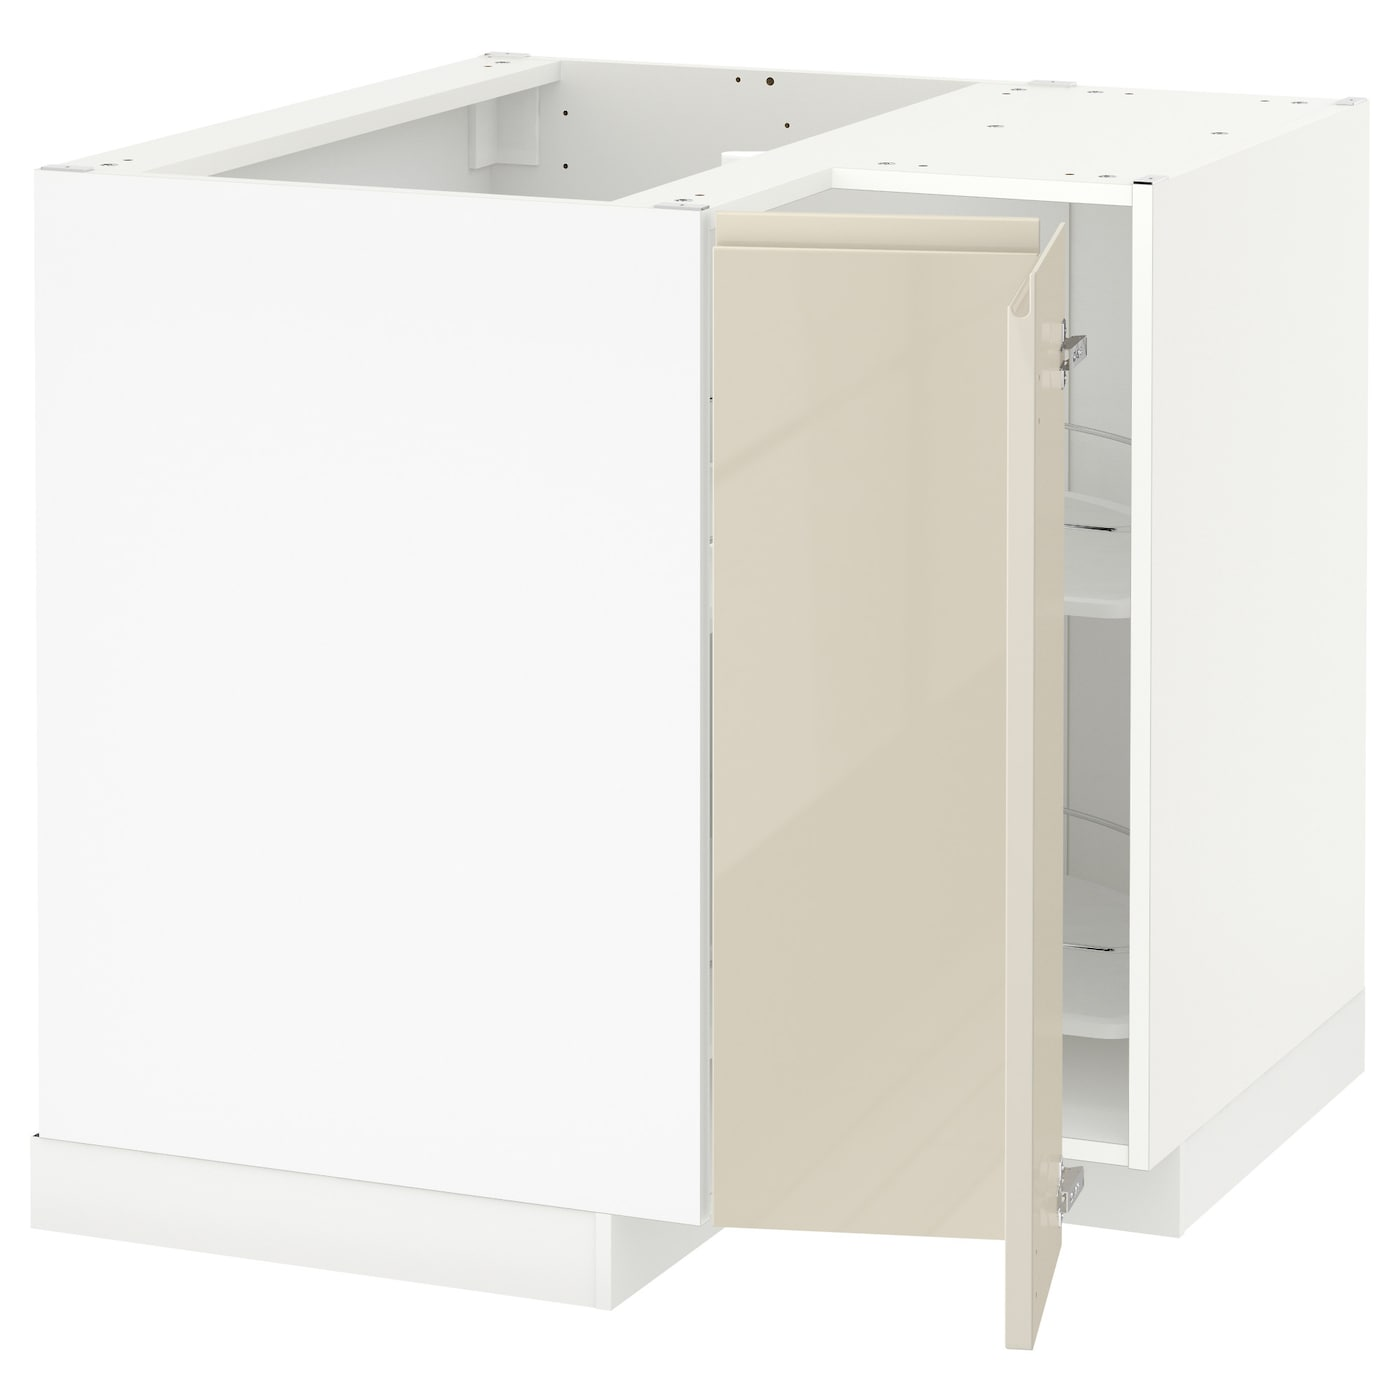 Ikea High Gloss White Cabinets Ikea White Gloss Cabinet: METOD Corner Base Cabinet With Carousel White/voxtorp High